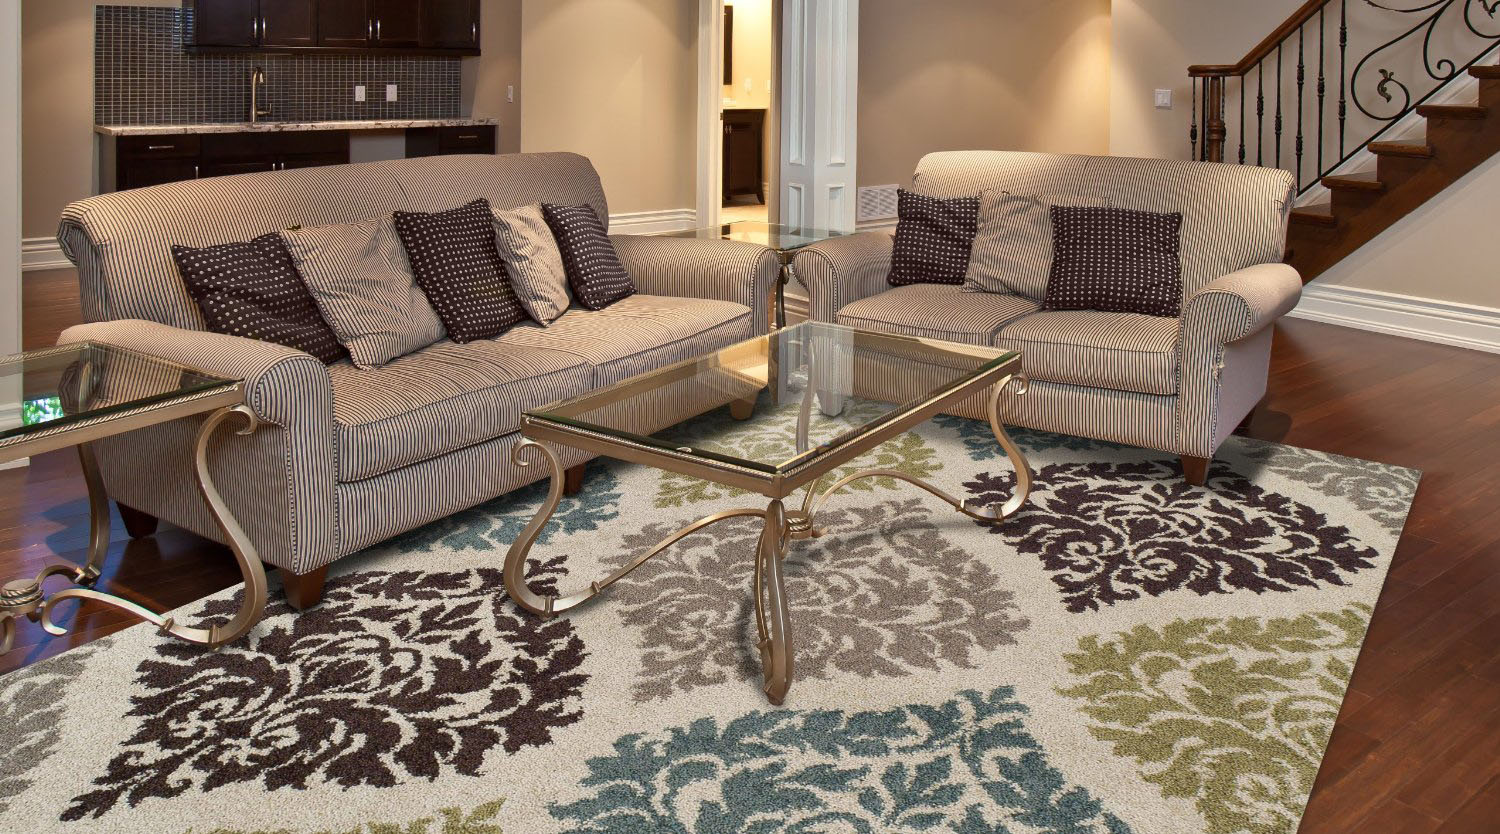 Area Rugs for Cozy Living Room